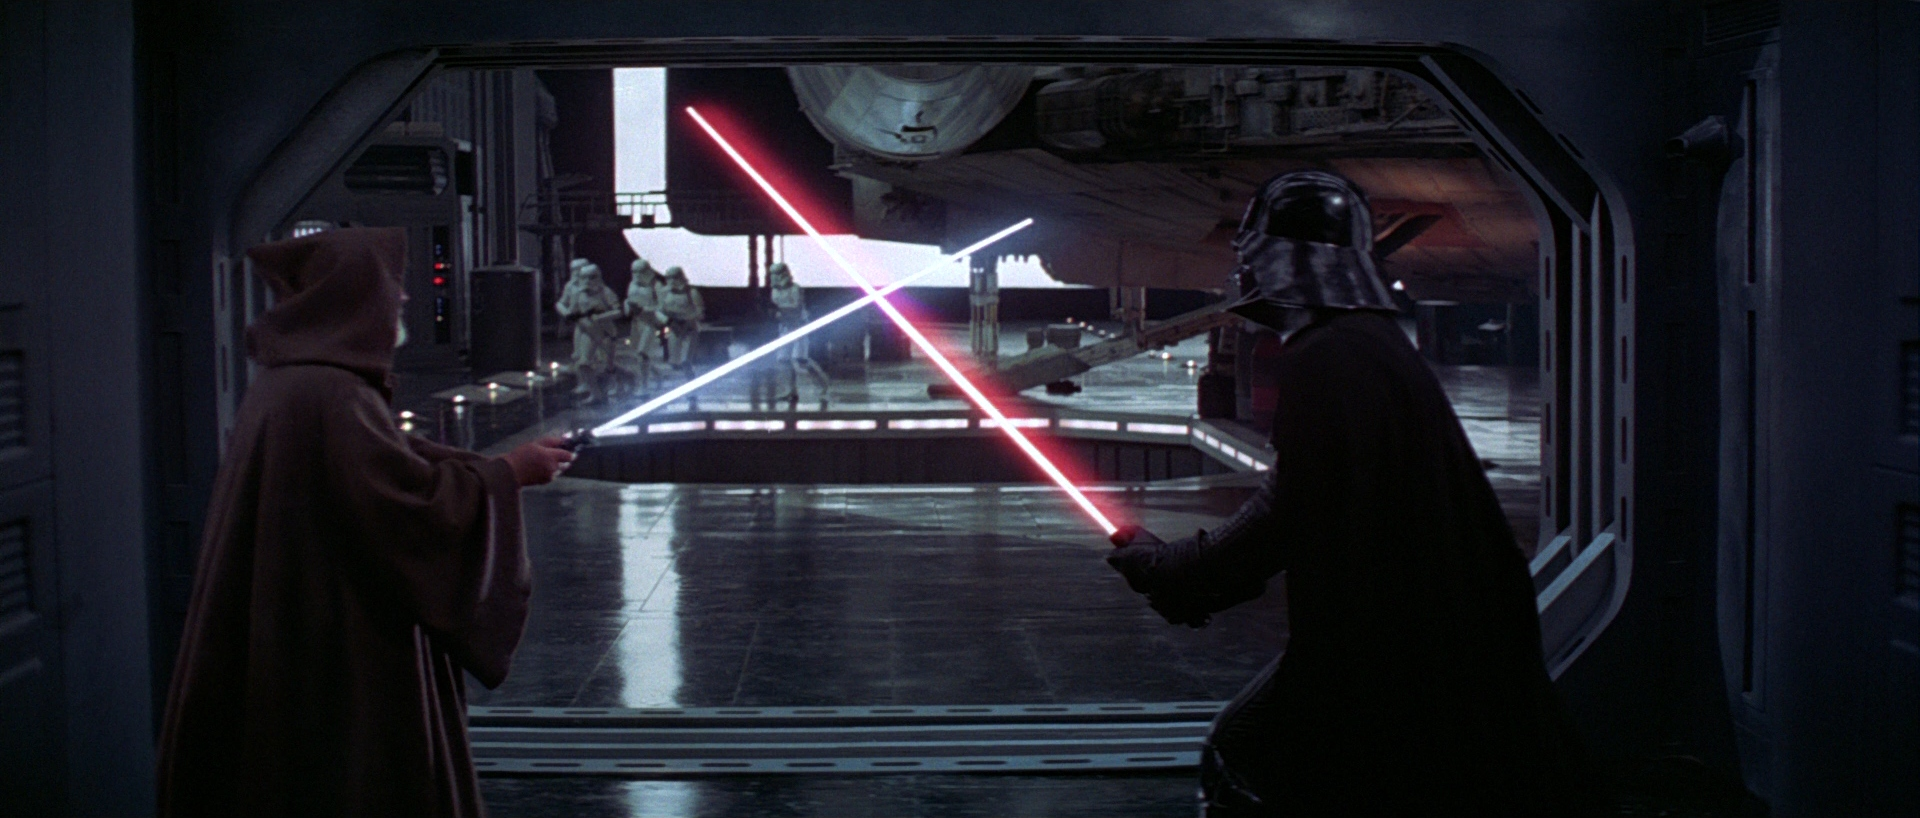 Review Star Wars Episode Iv A New Hope The Viewer S Commentary